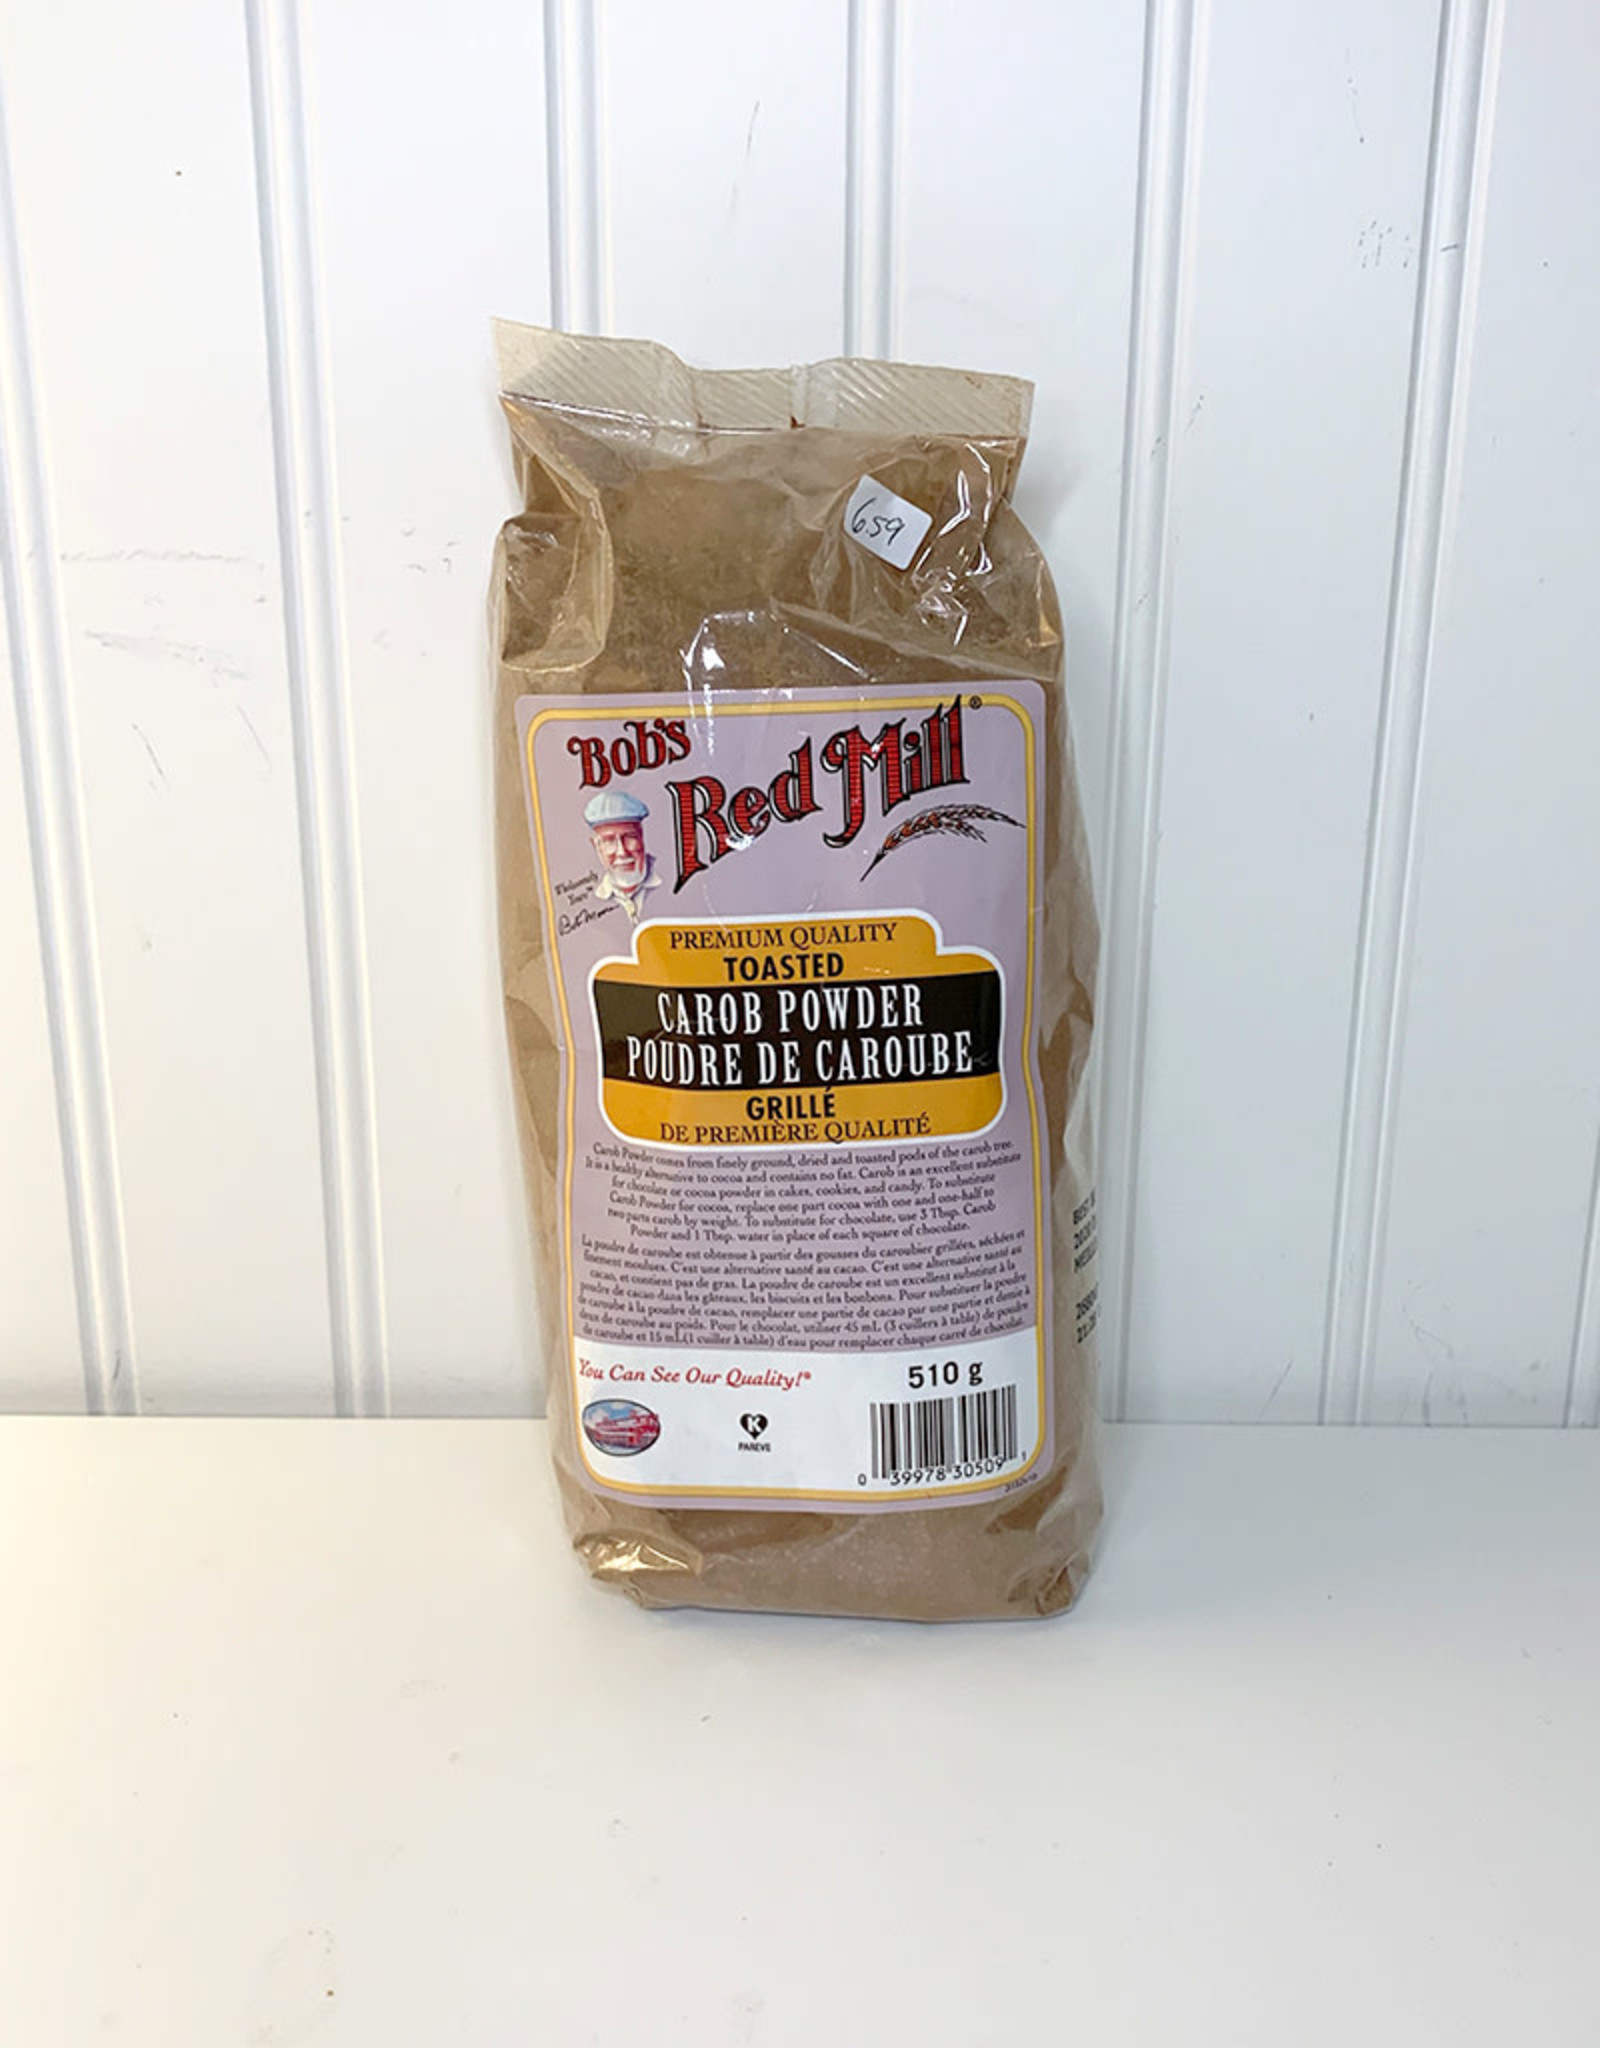 Bobs Red Mill Bobs Red Mill - Toasted Carob Powder (510g)